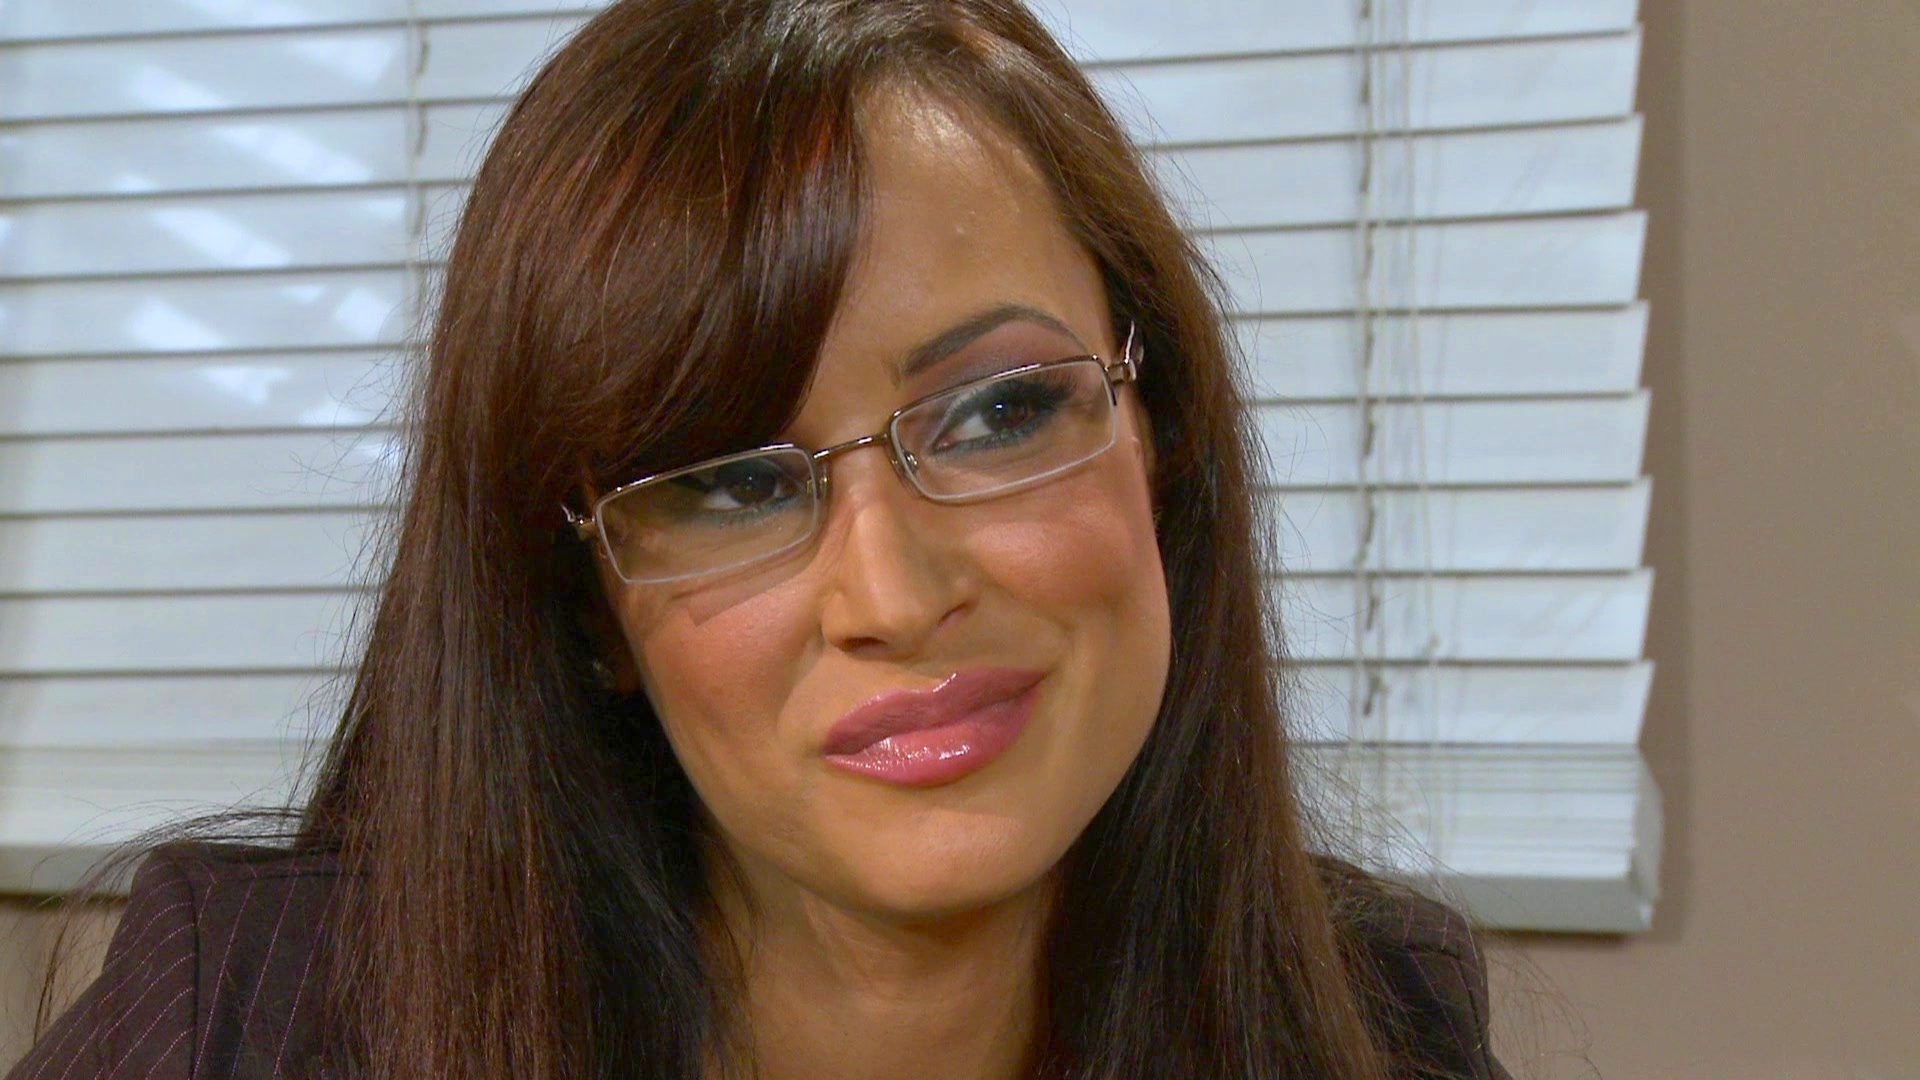 Lisa Ann Widescreen